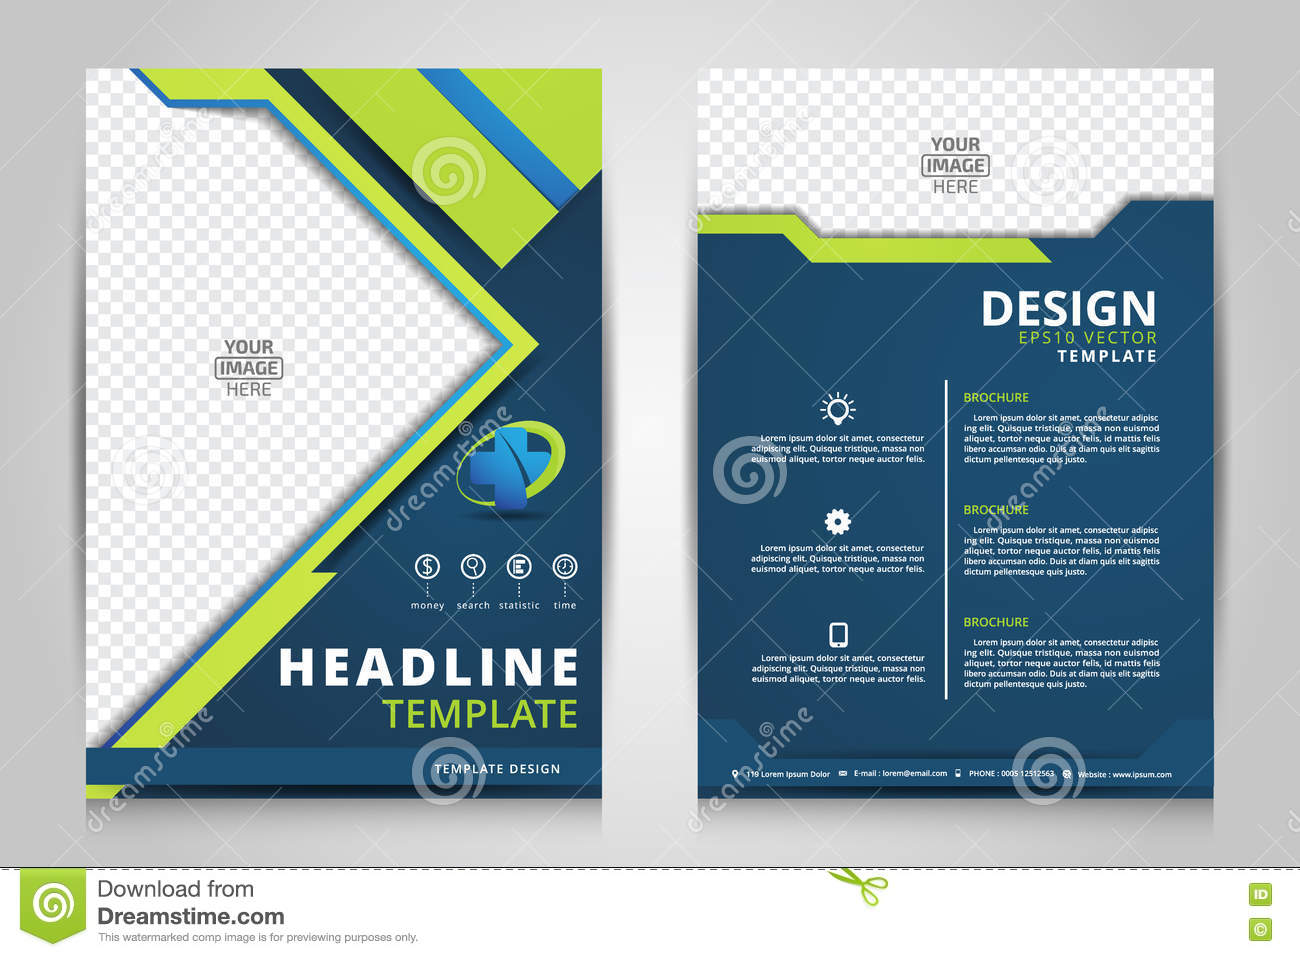 Modern Flyer Template from thumbs.dreamstime.com